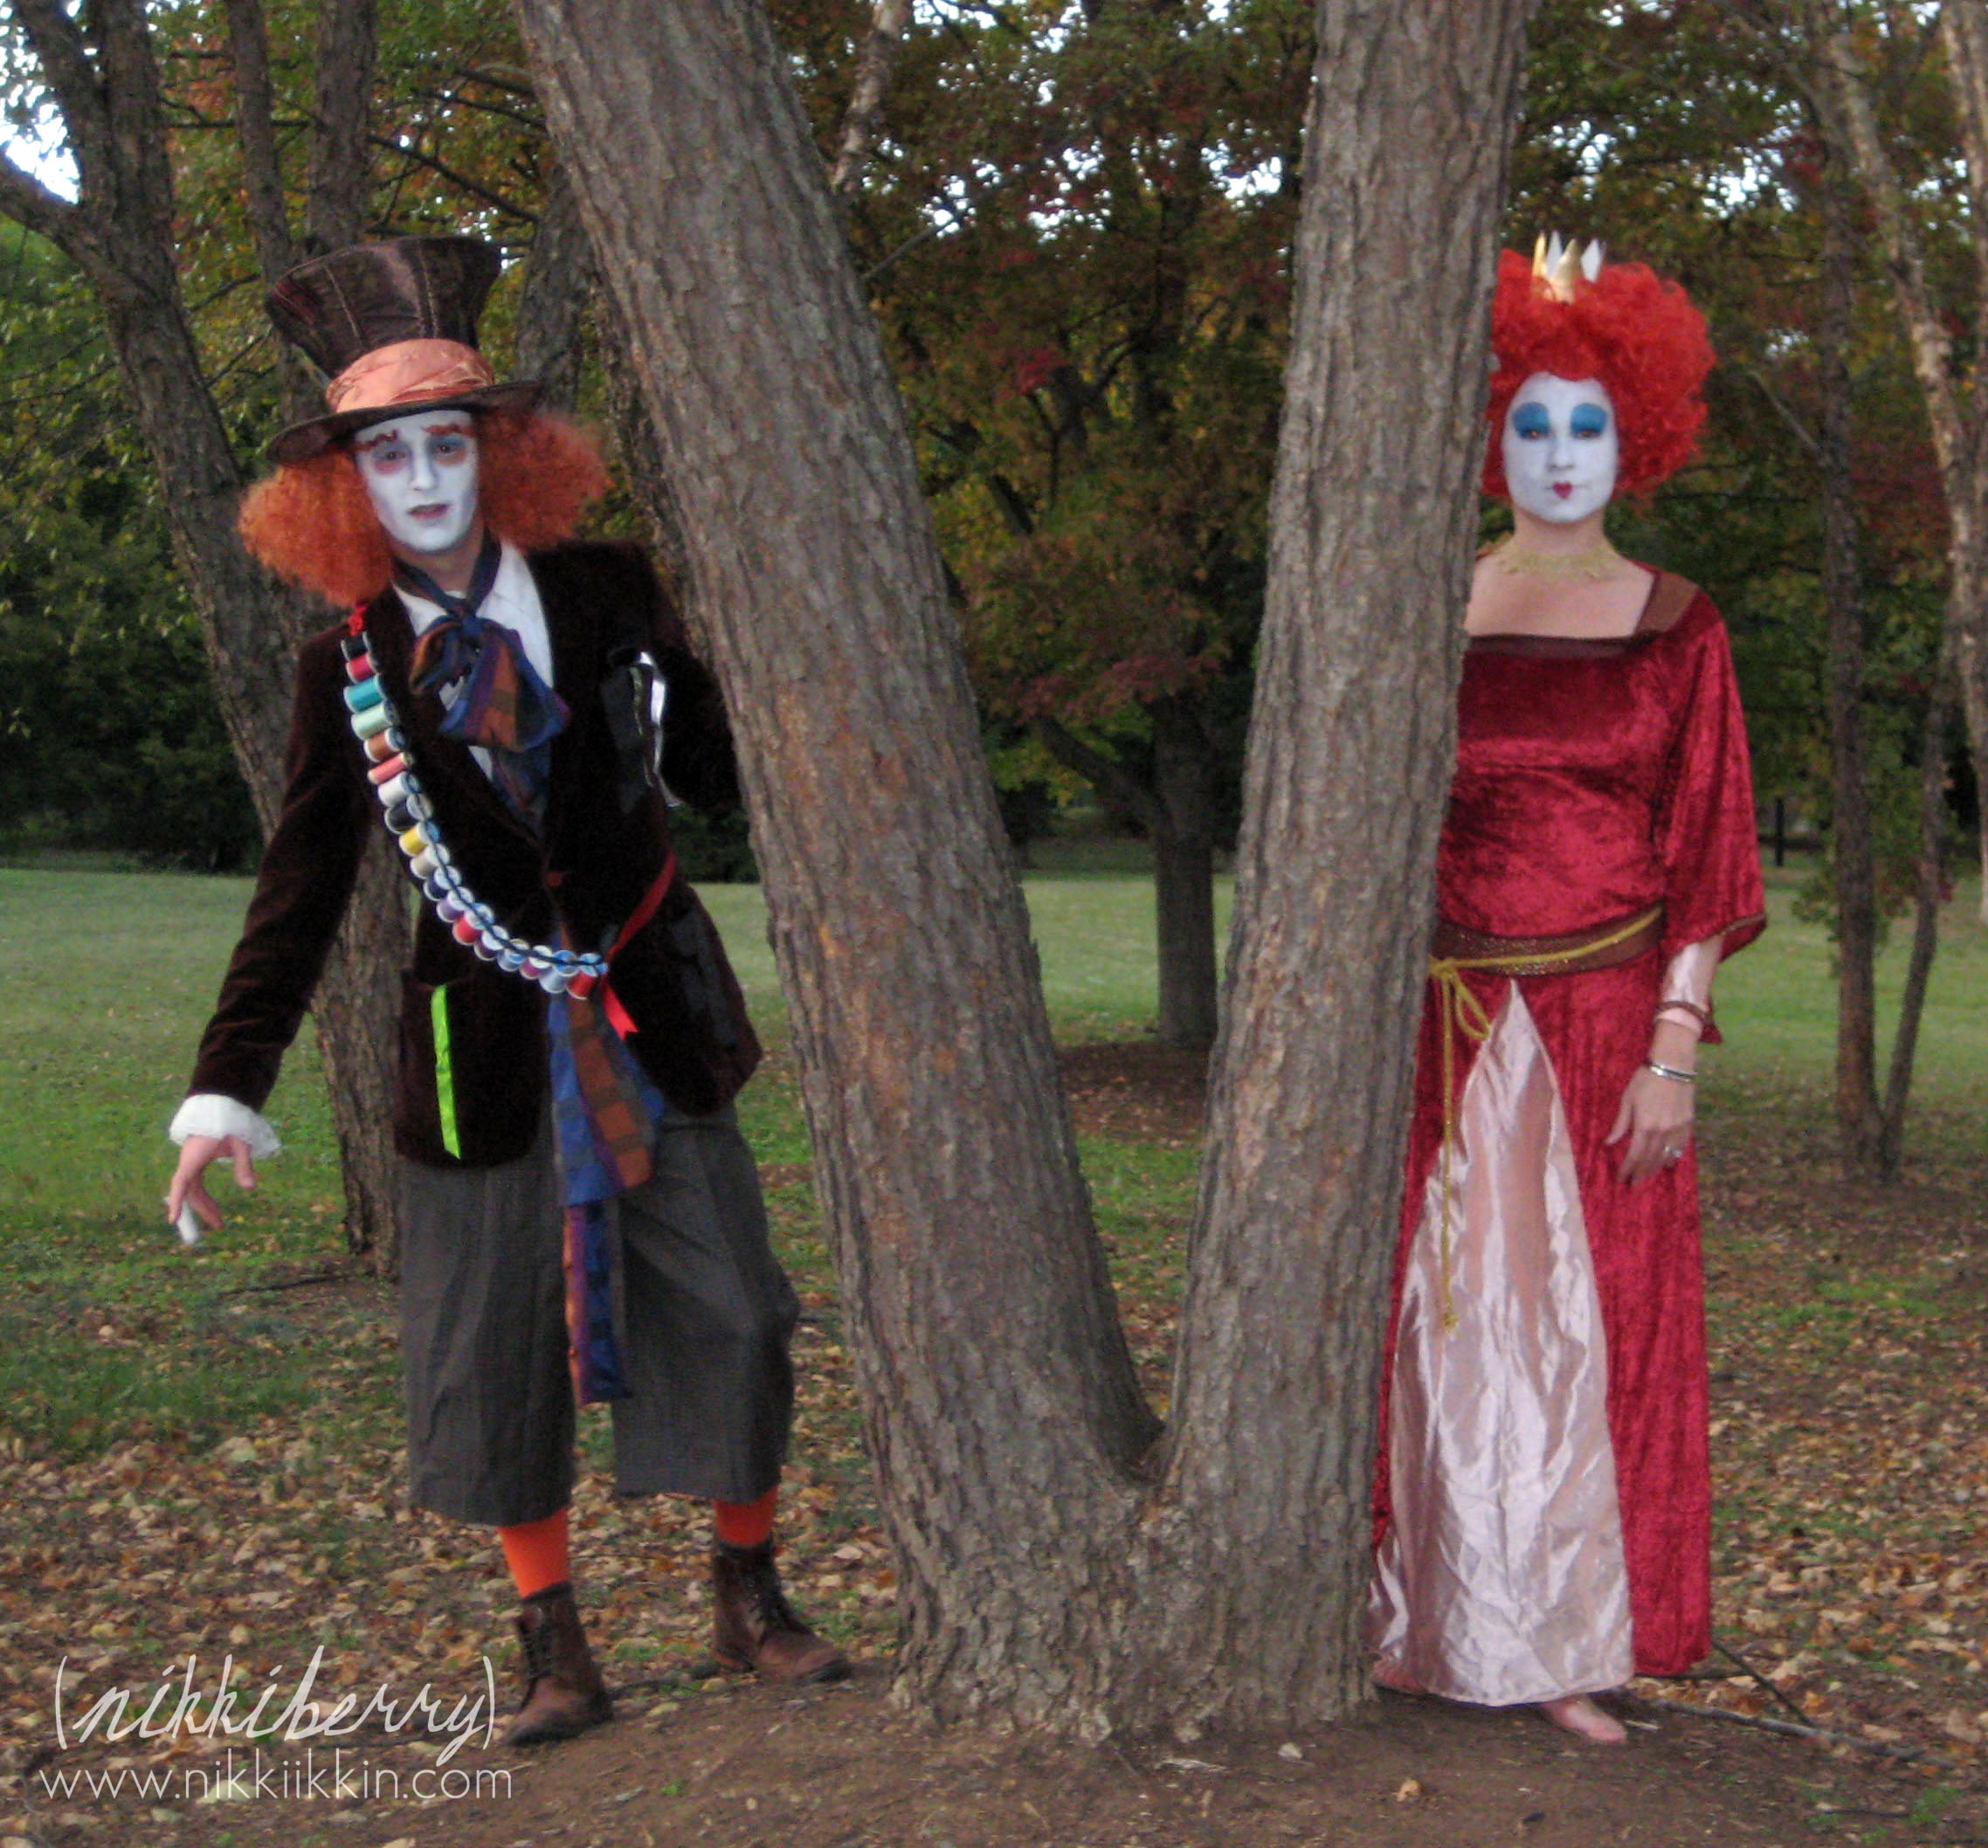 The wonderland family halloween costumes mad hatter and red queen halloween costumes solutioingenieria Choice Image